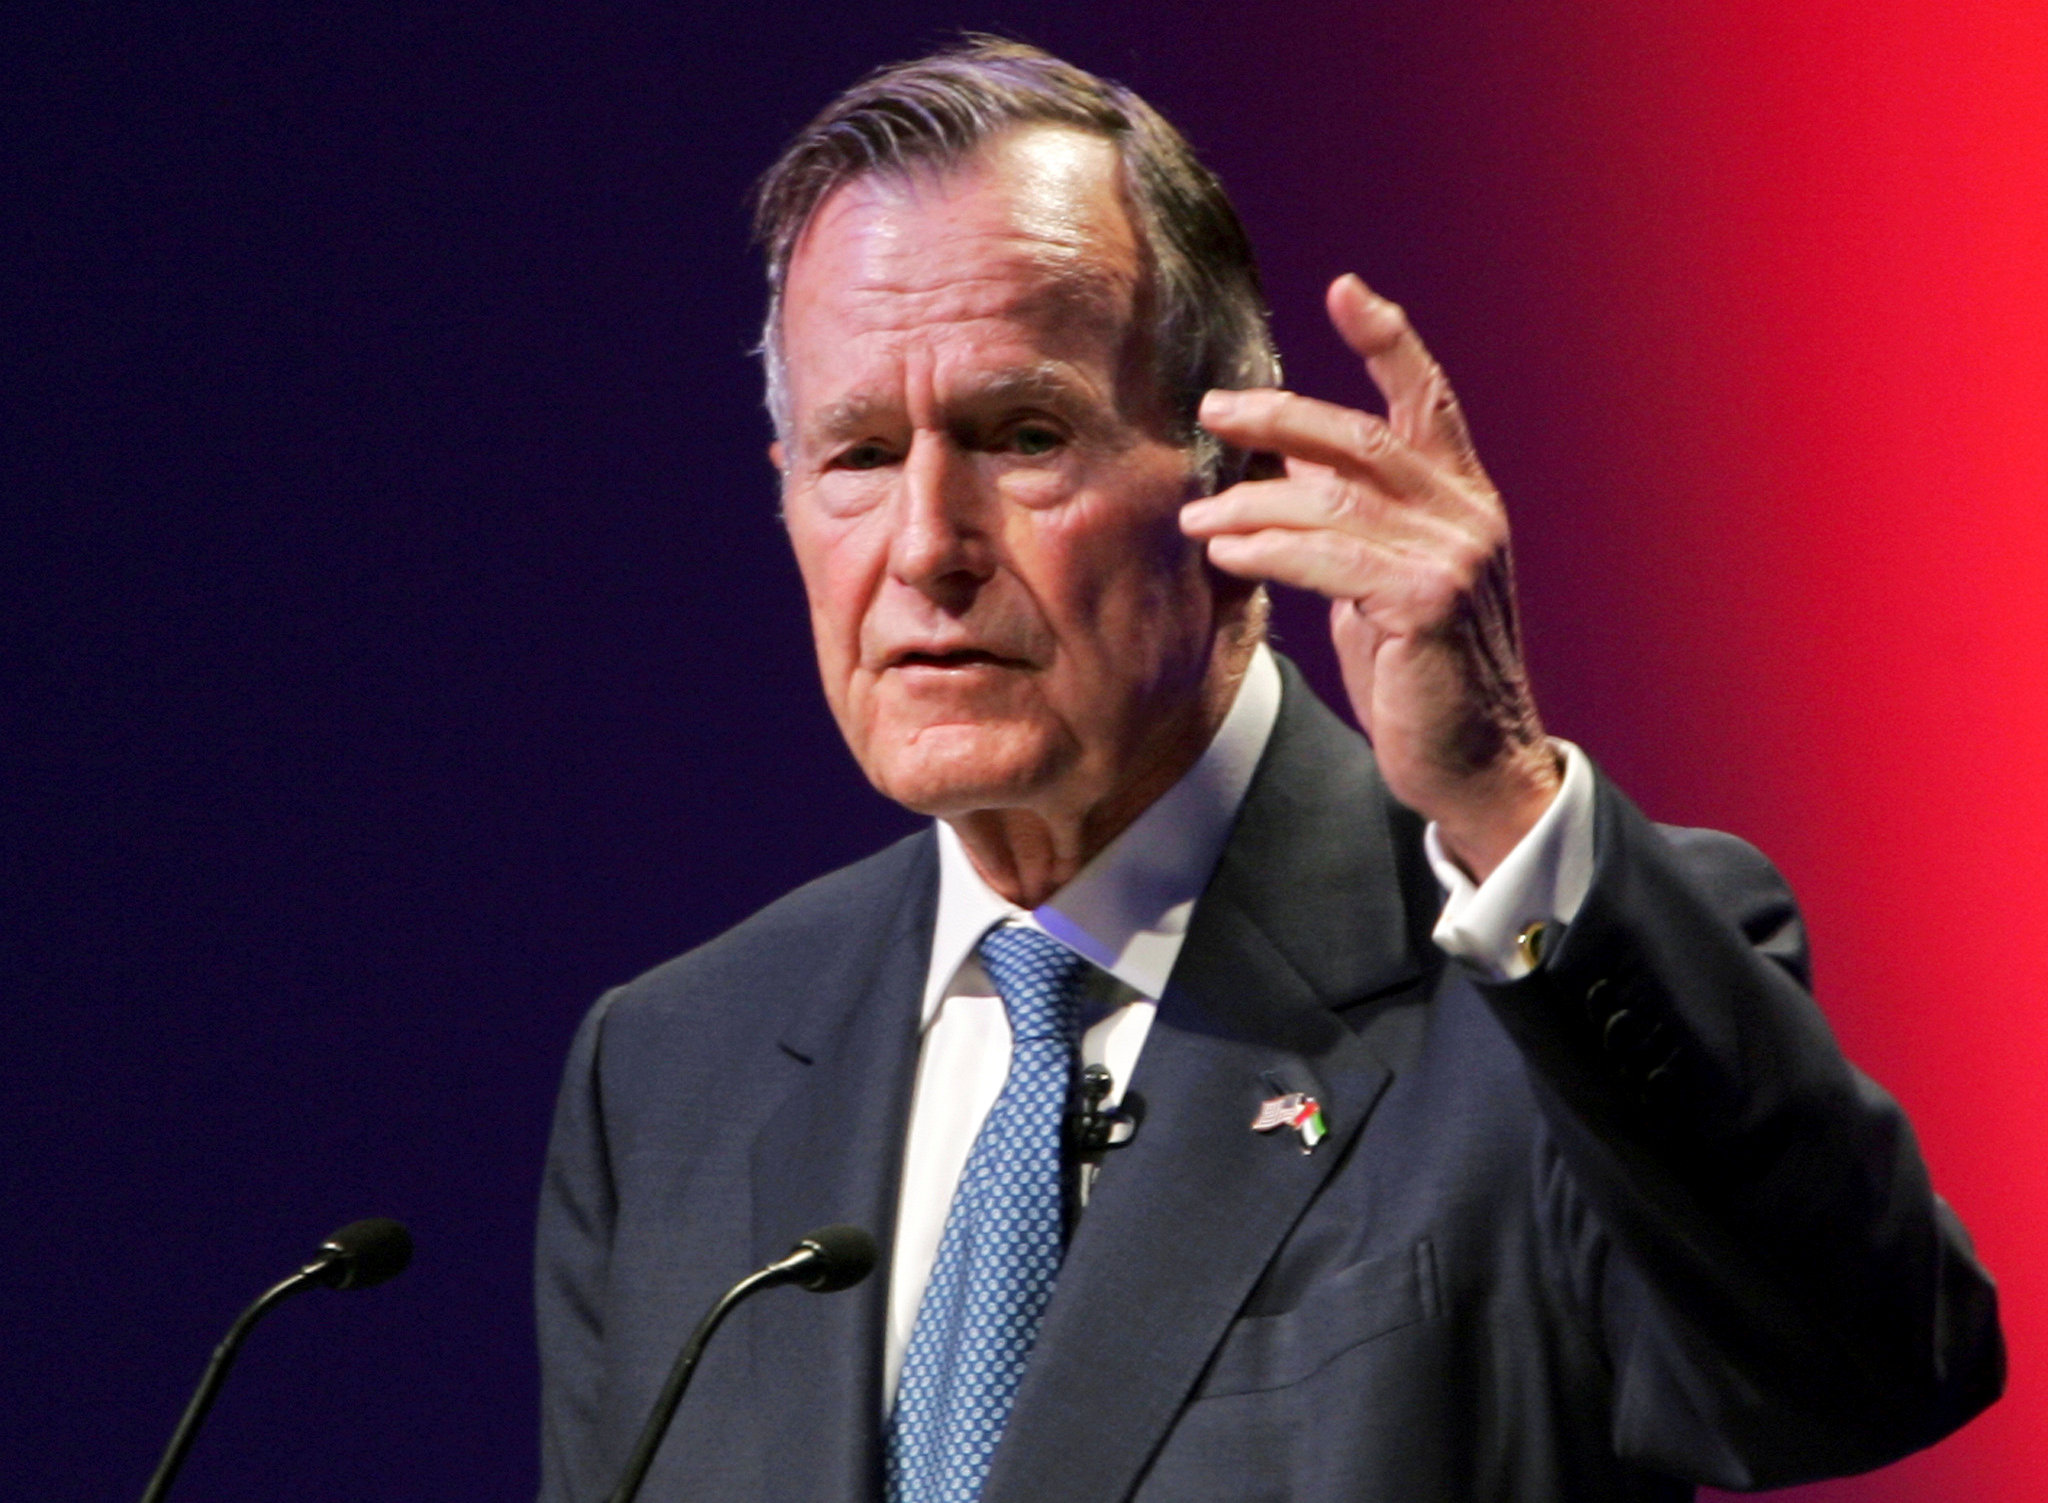 George H.W. Bush en Abu Dhabi en 2006. (REUTERS/Stringer/File Photo)